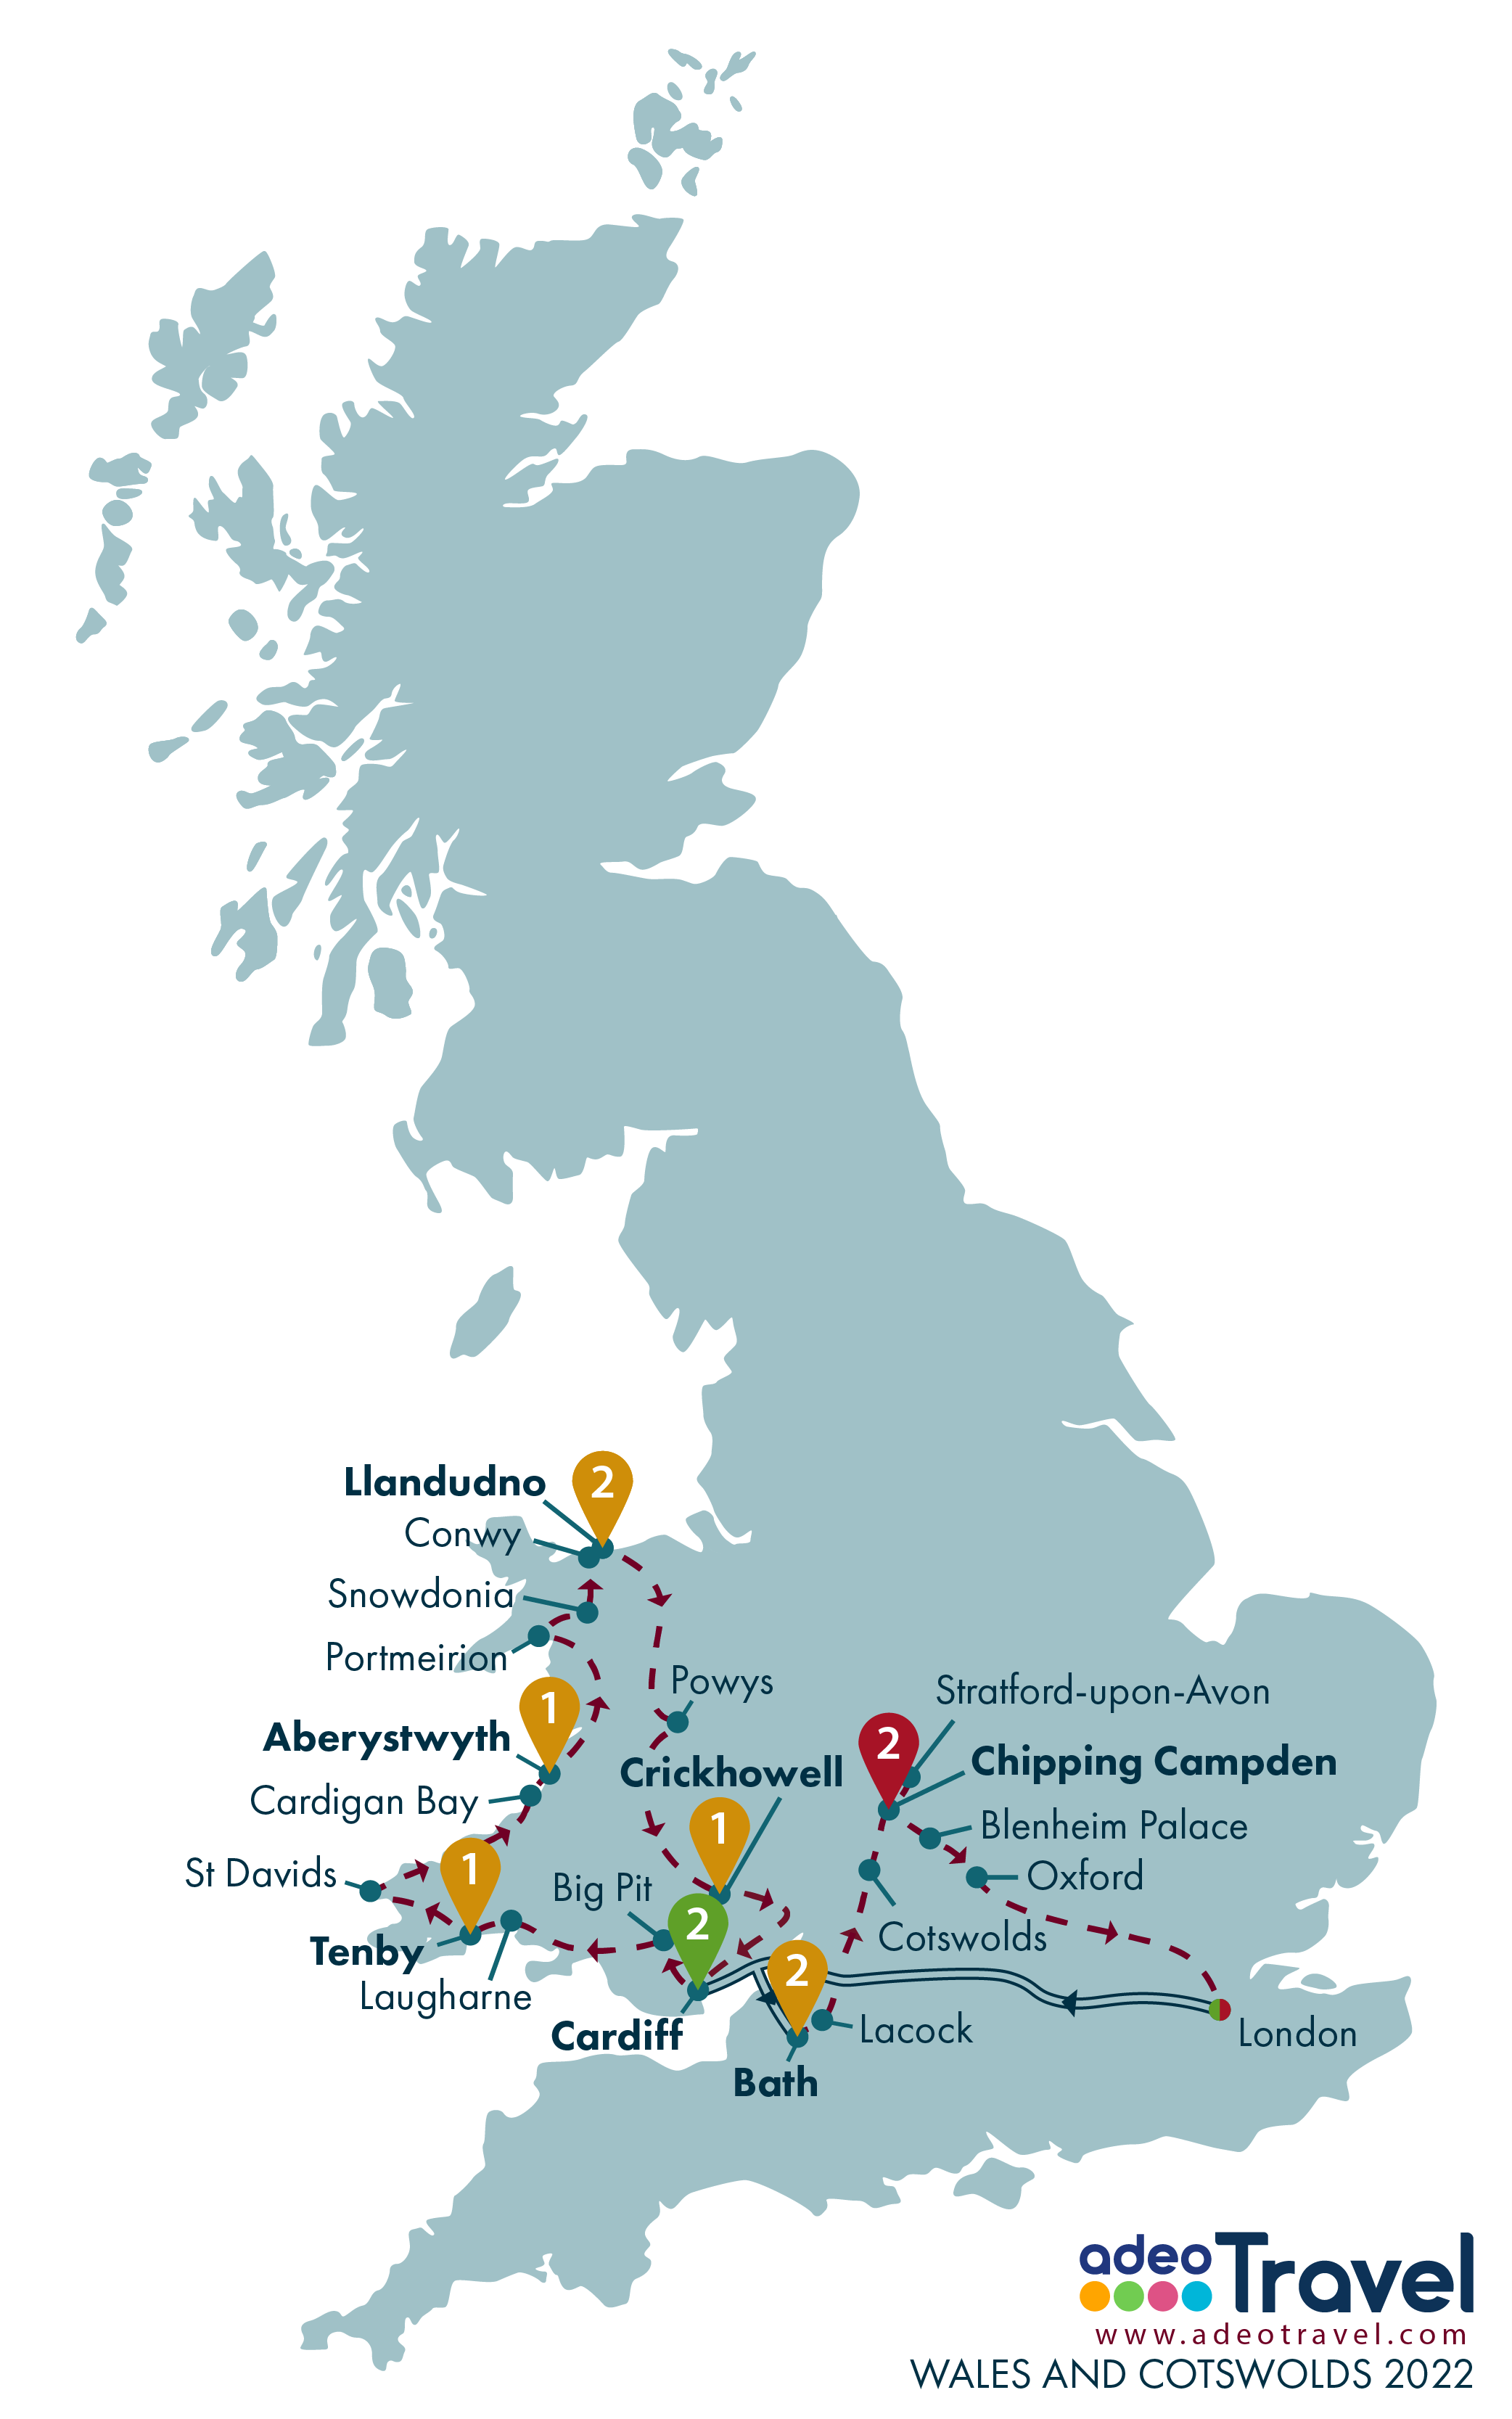 Map - Wales and Cotswolds 2022